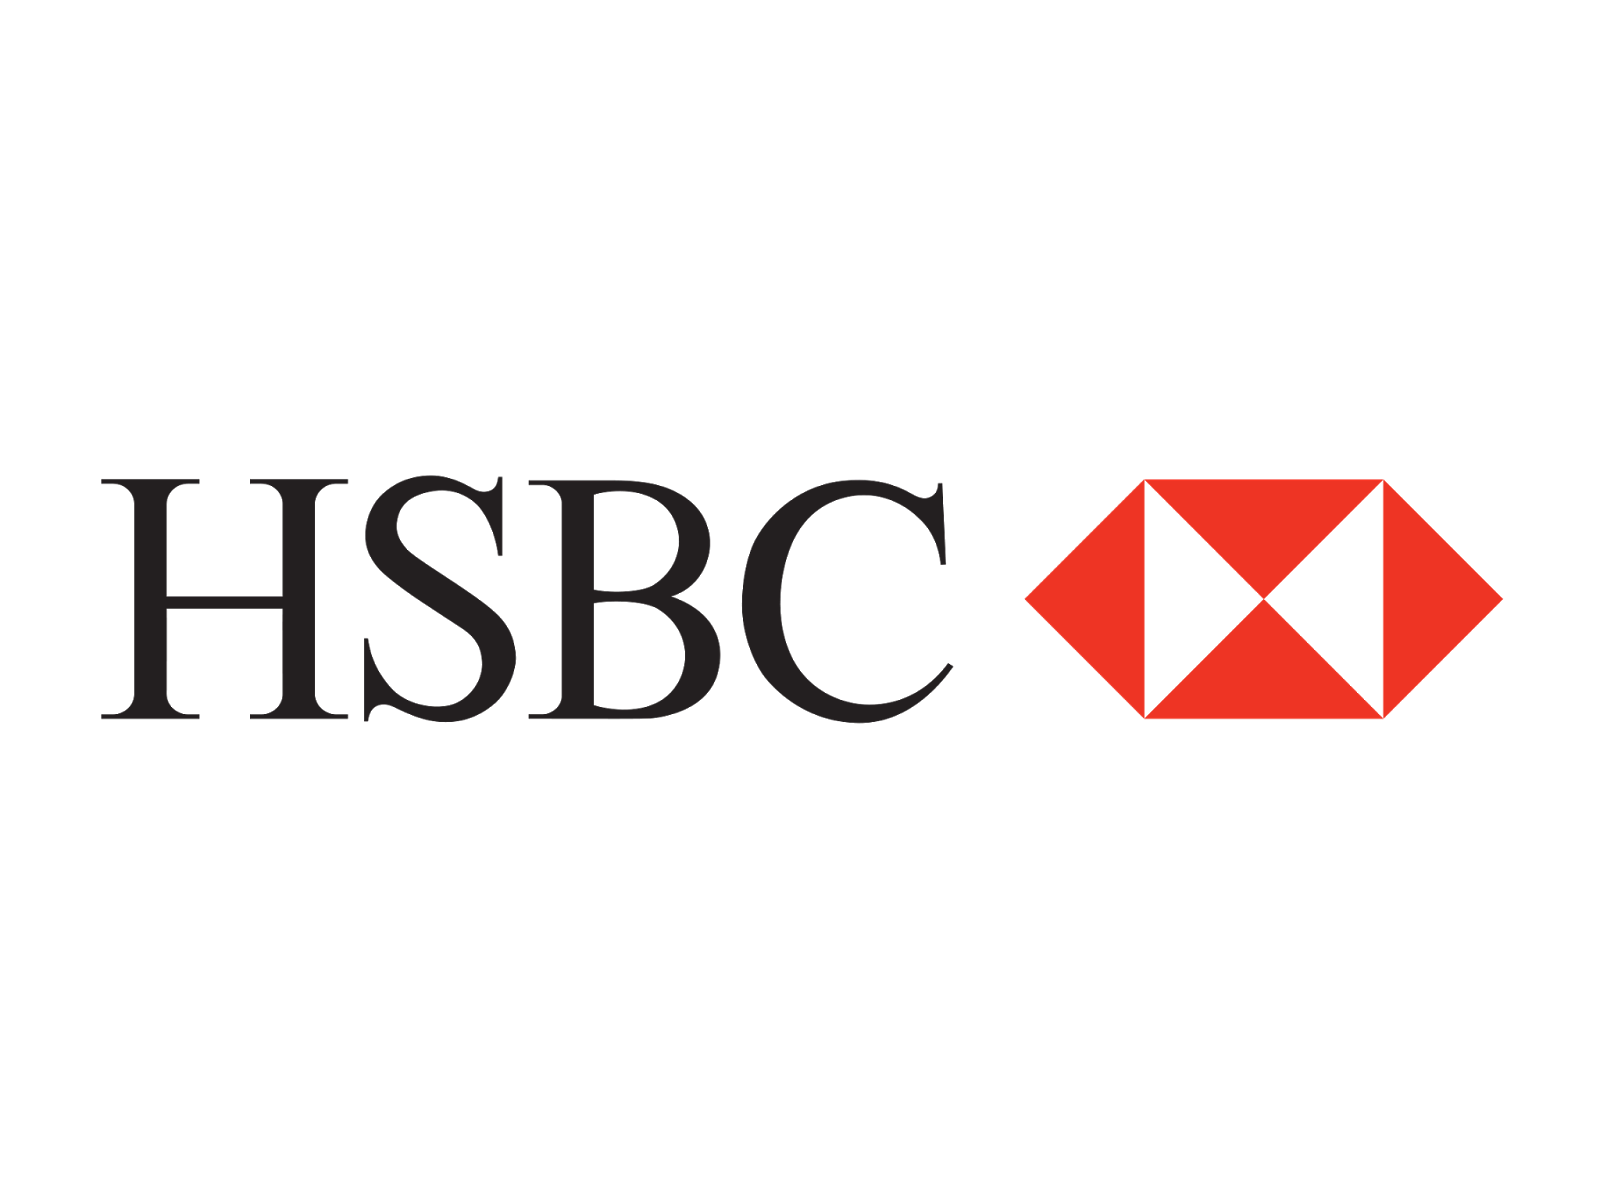 hsbc composers commissions bil morphology composer sound smith